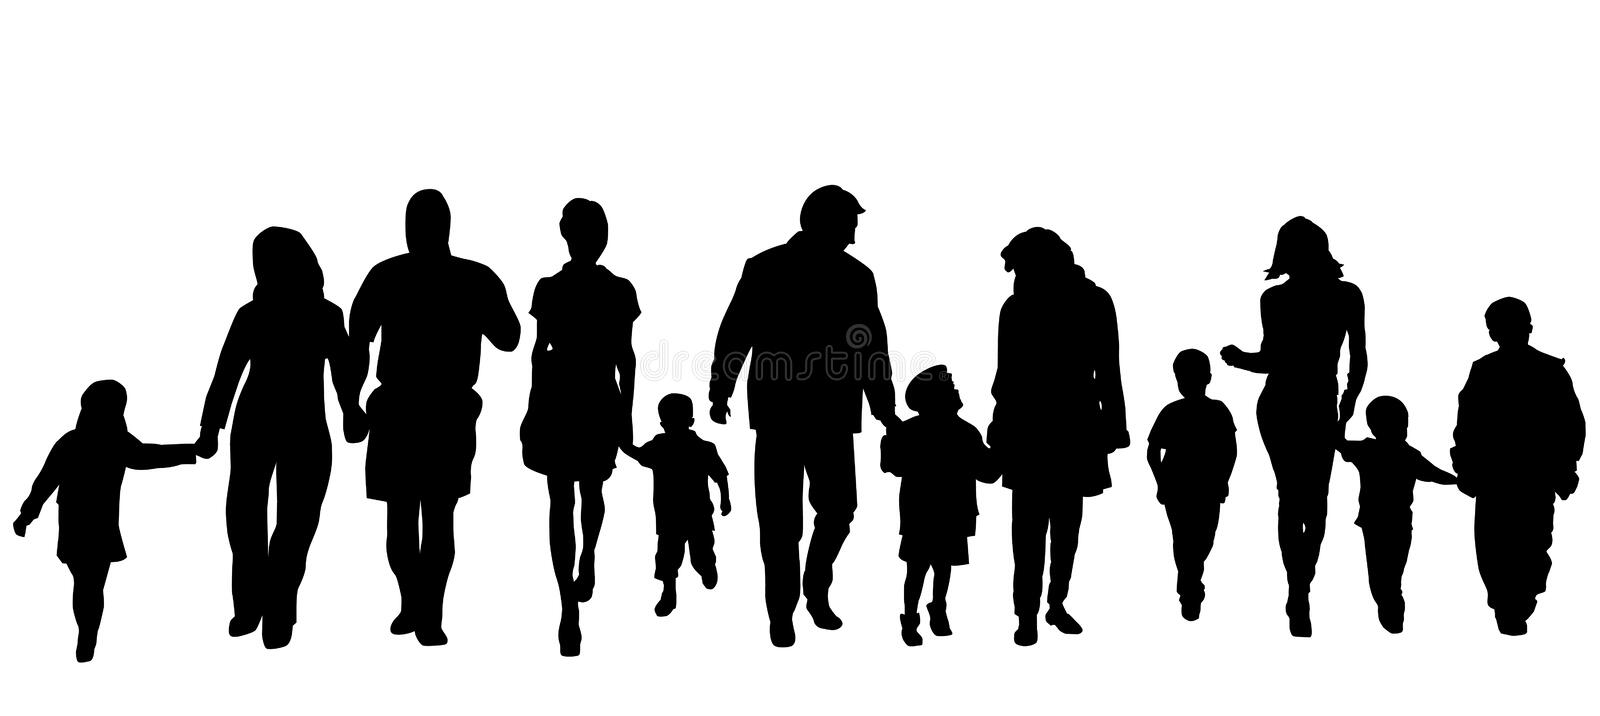 Crowd vector illustration